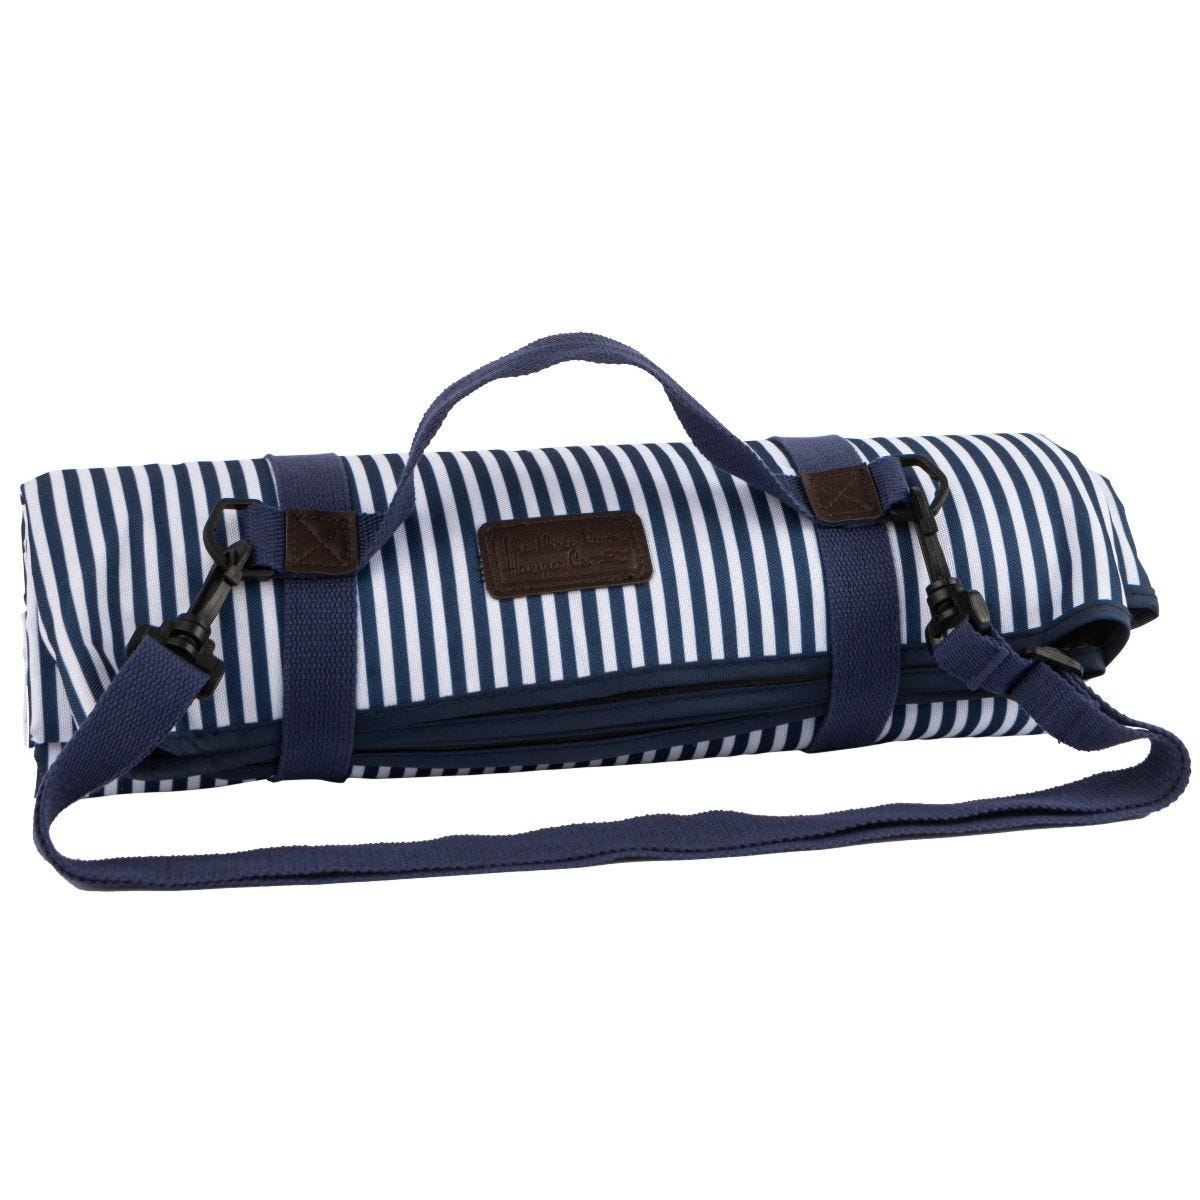 Three Rivers Picnic Blanket 150 x 135 cm